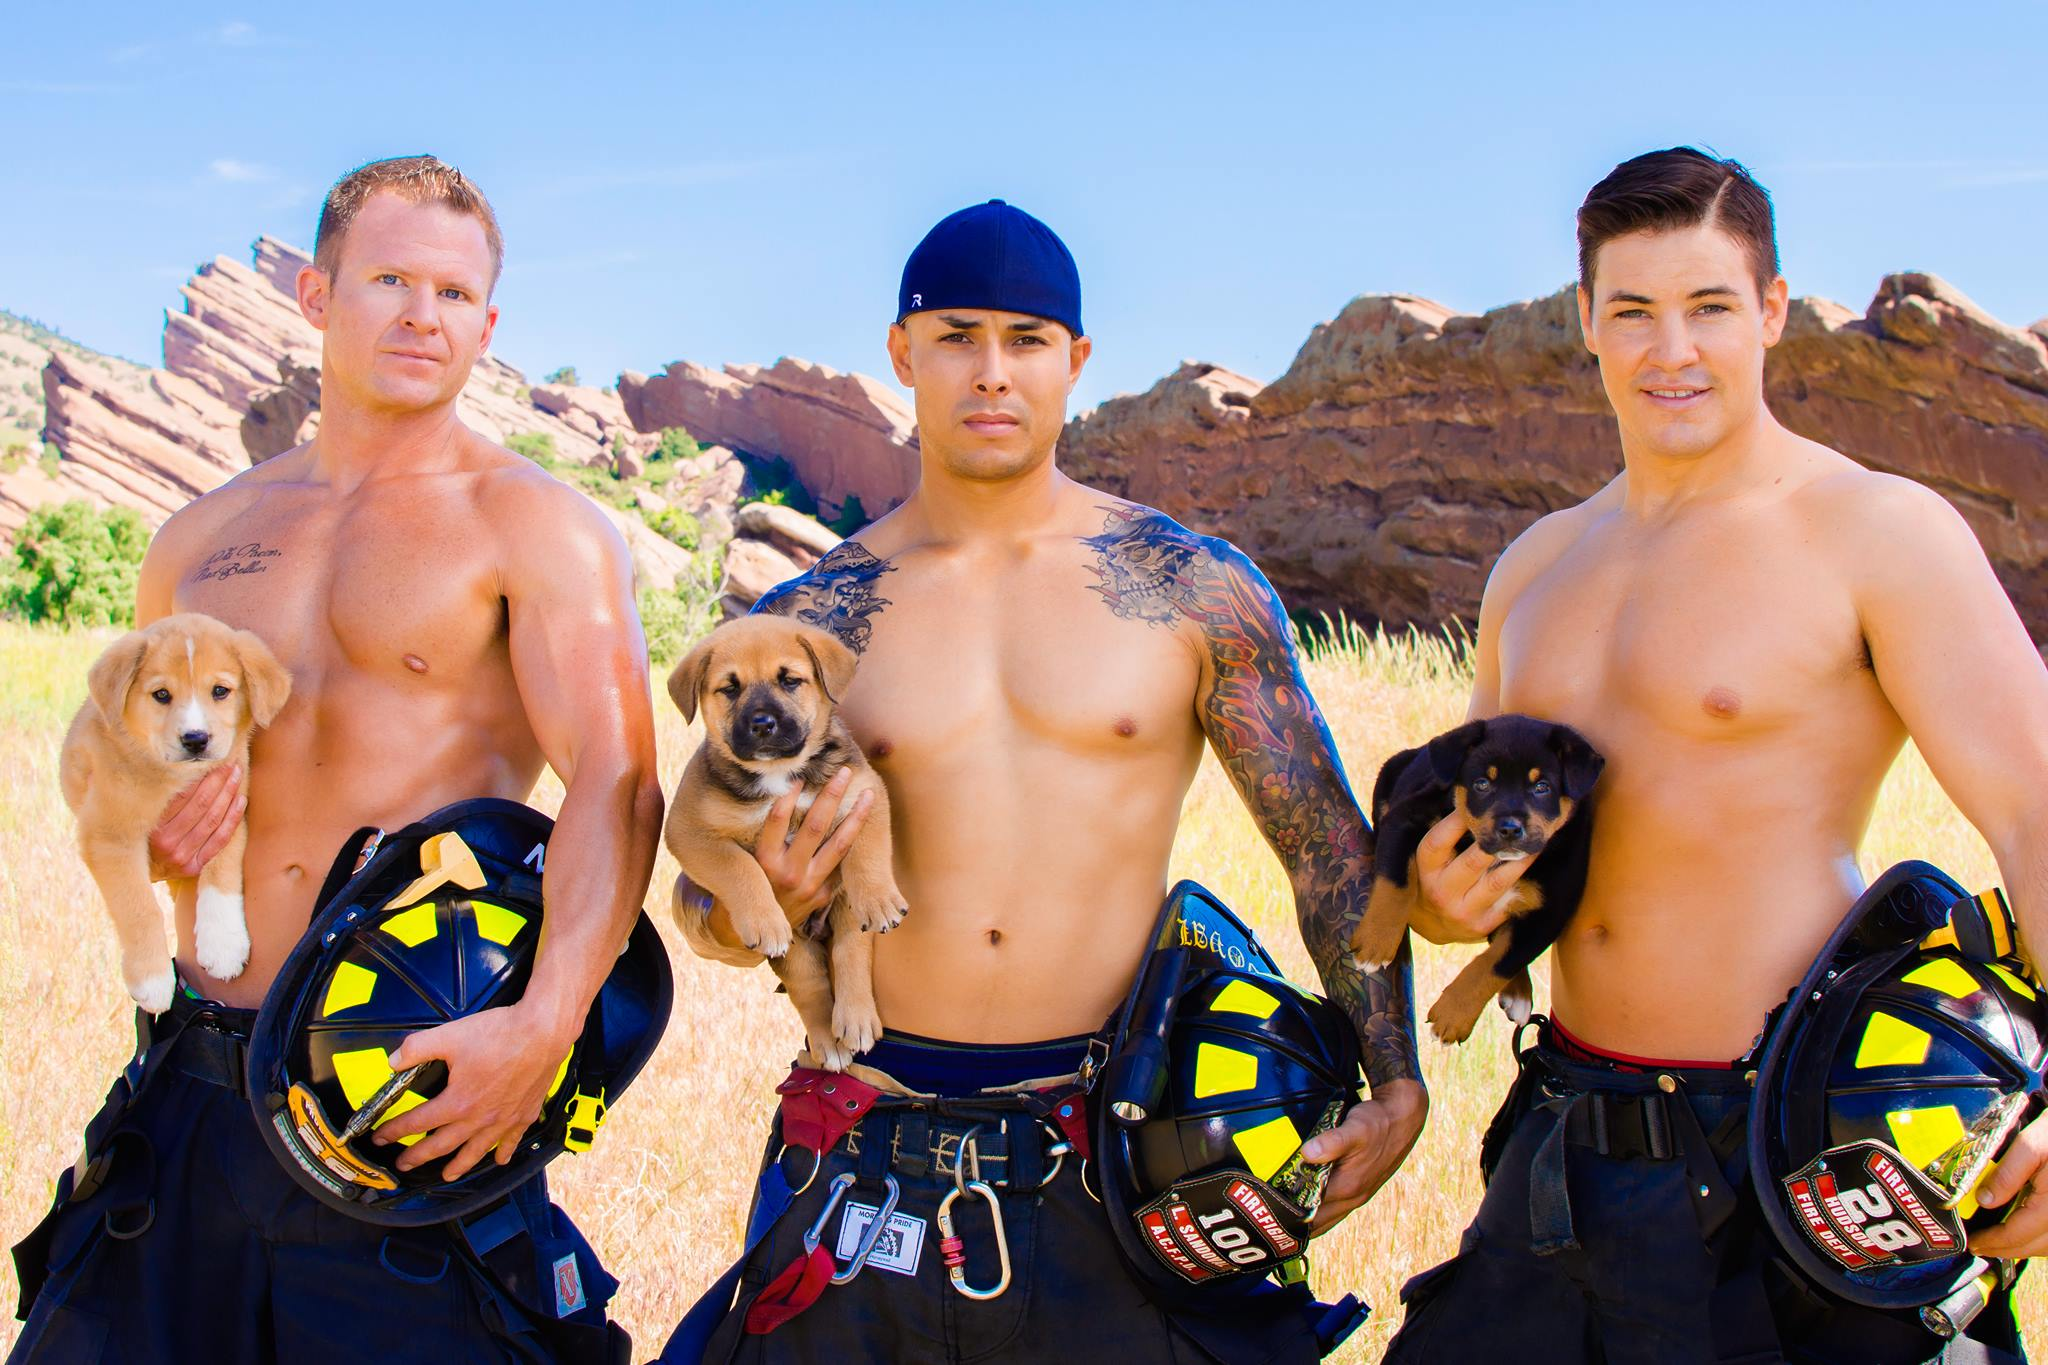 Firefighters Calendar